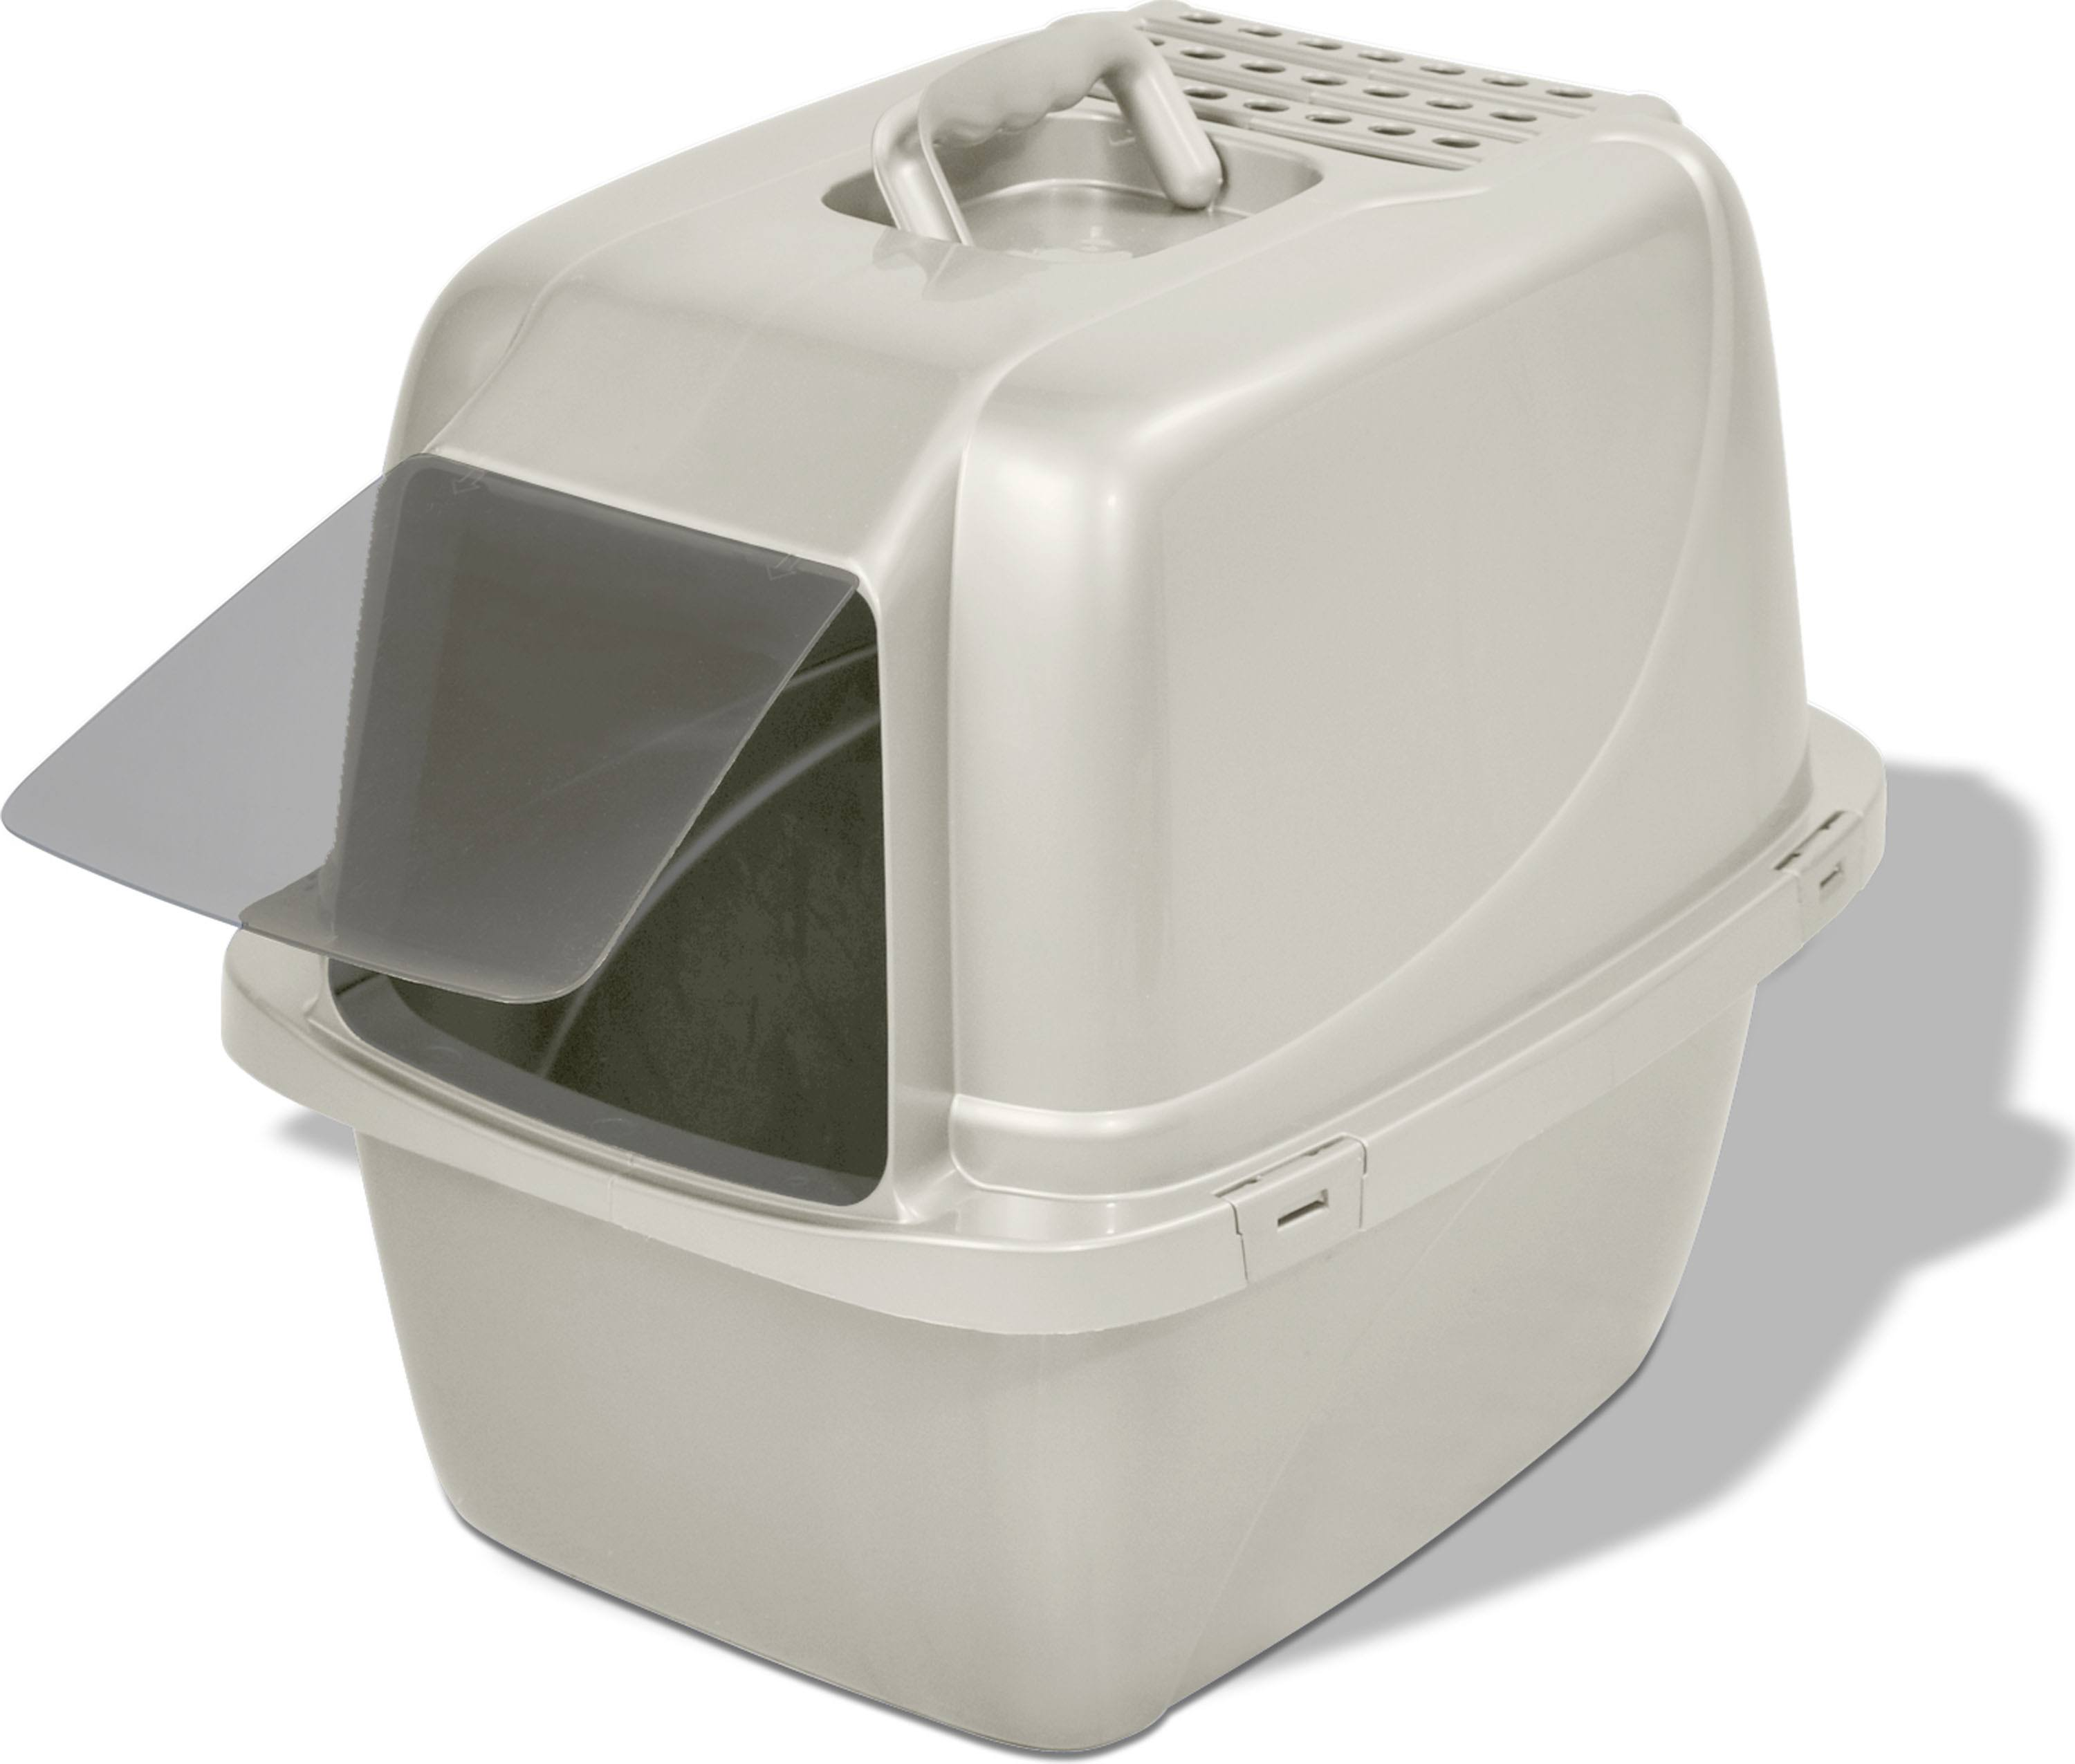 Van Ness Enclosed Cat Litter Box - Large